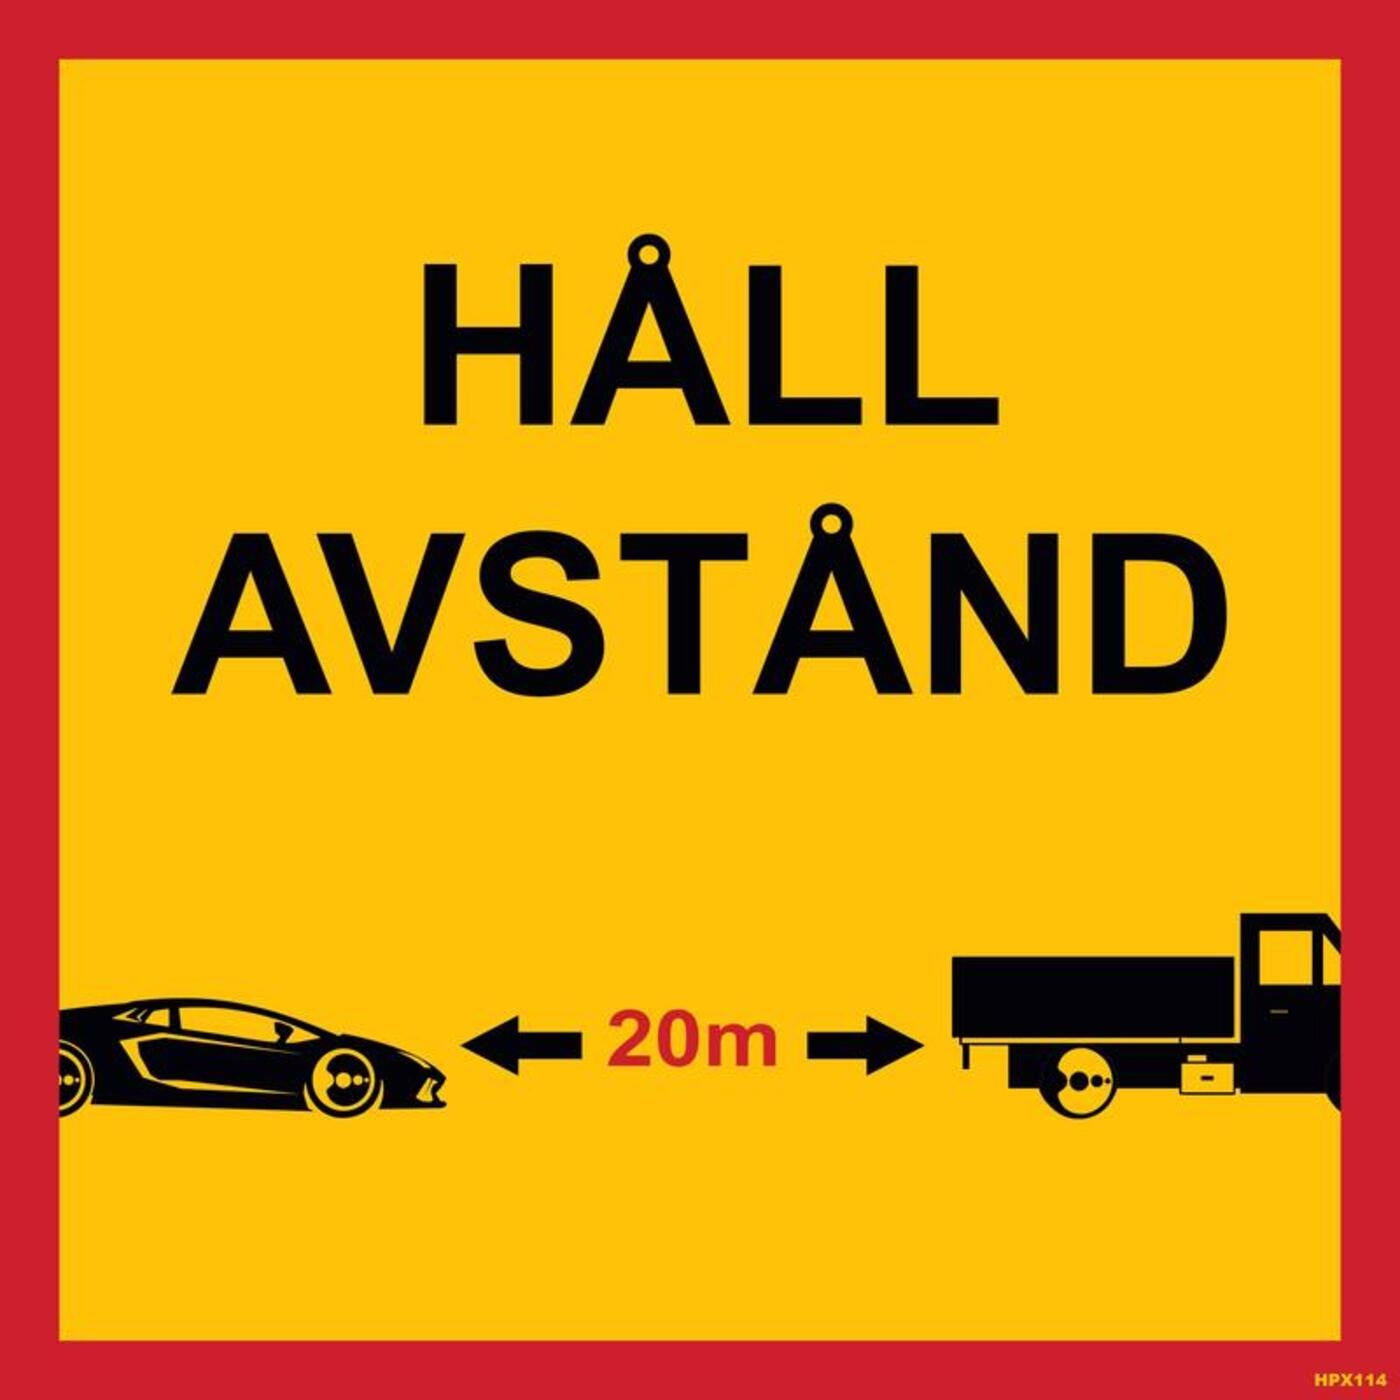 Download Hall Avstand on Electrobuzz